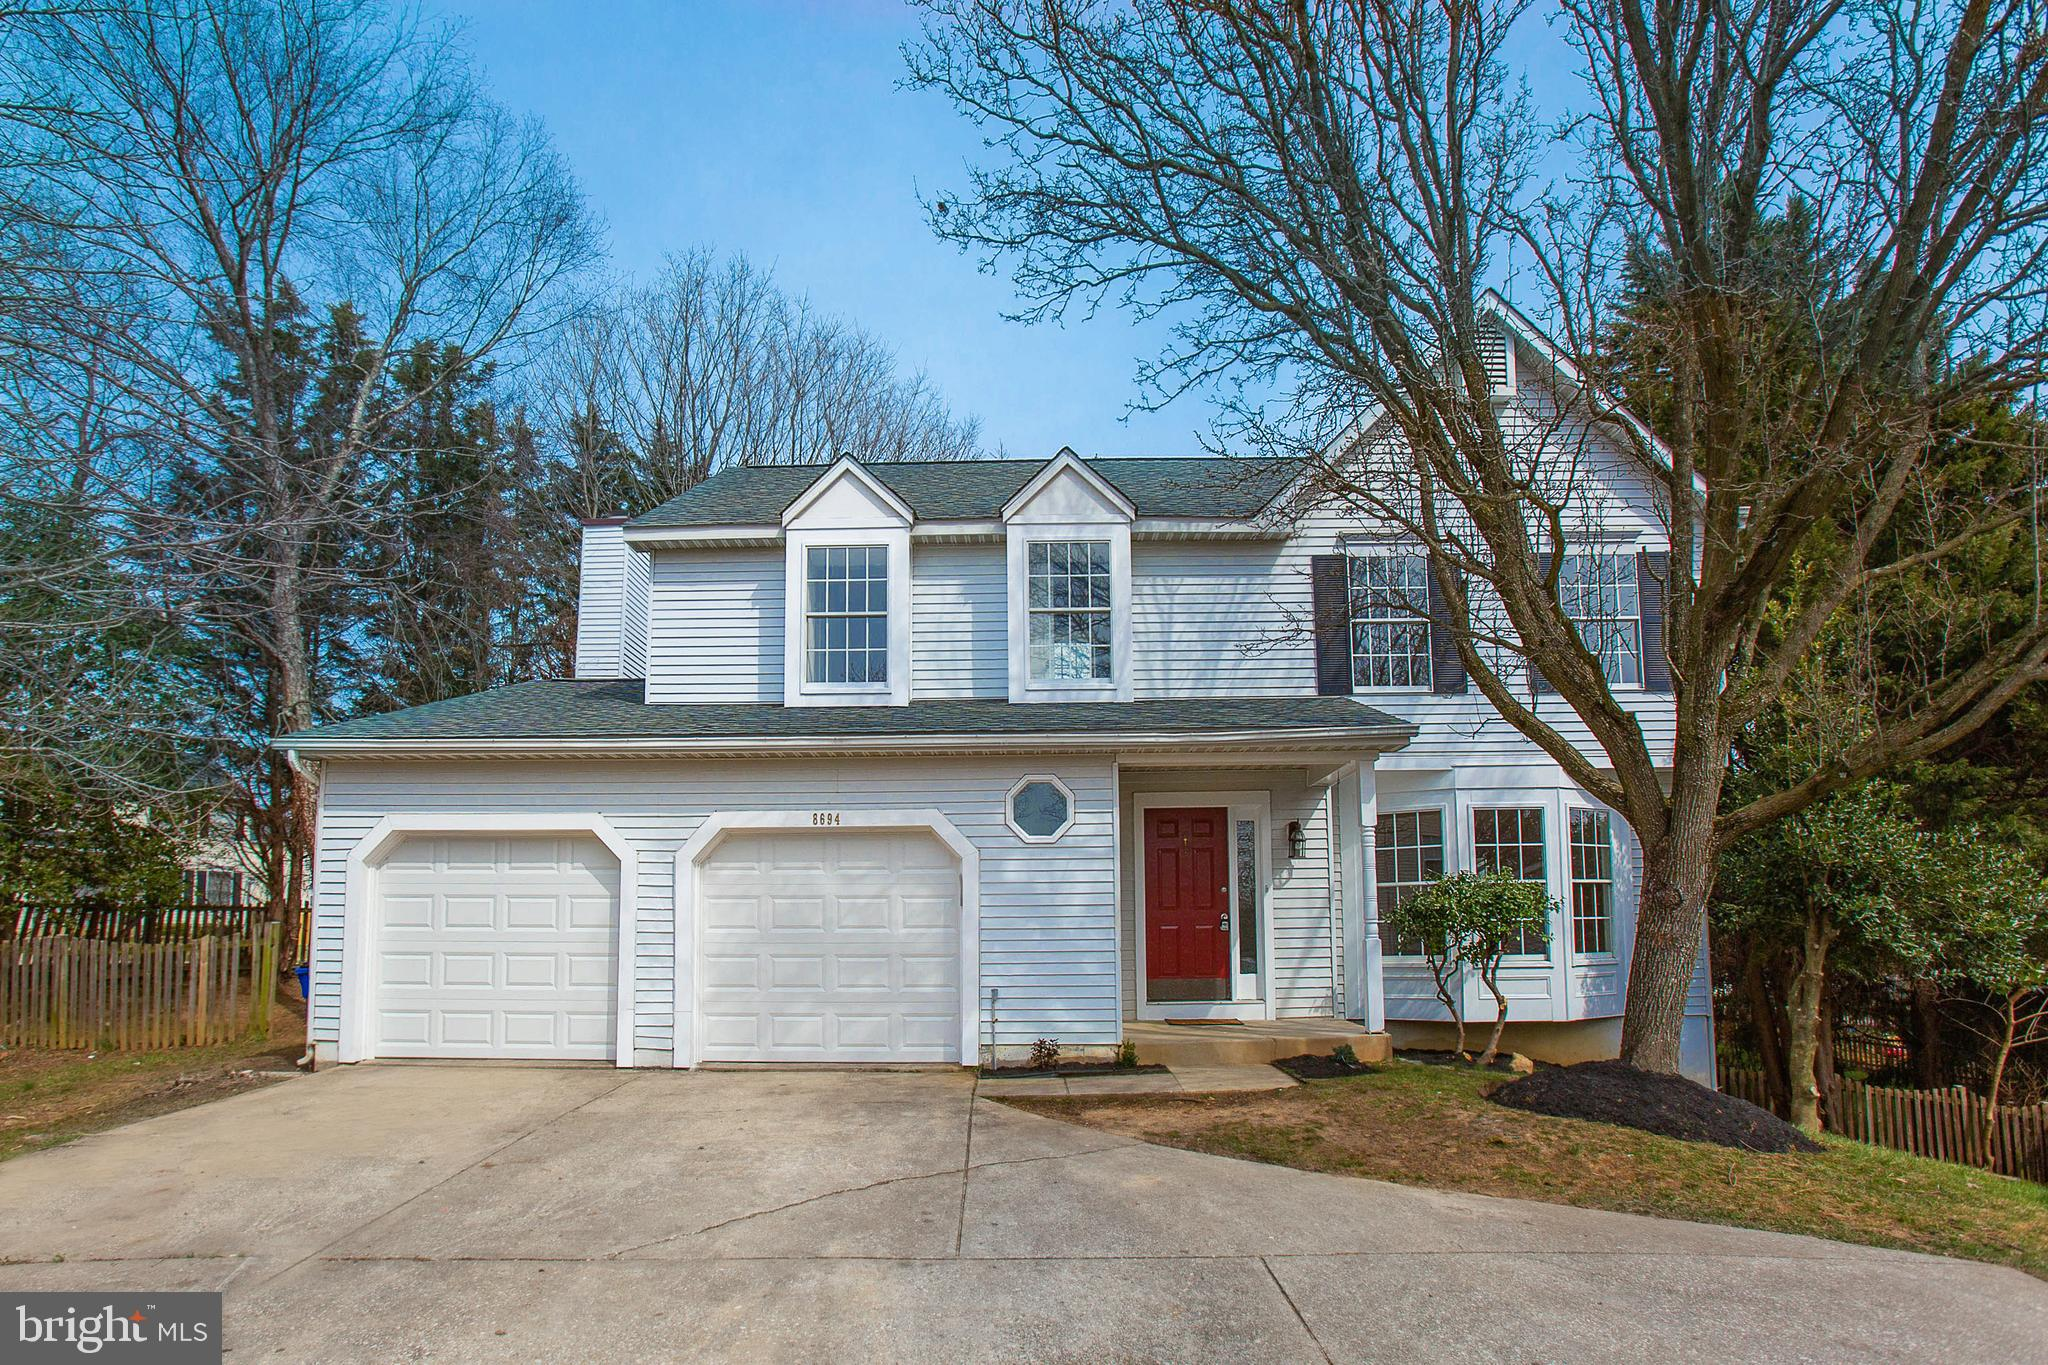 8694 OPEN MEADOW WAY, COLUMBIA, MD 21045